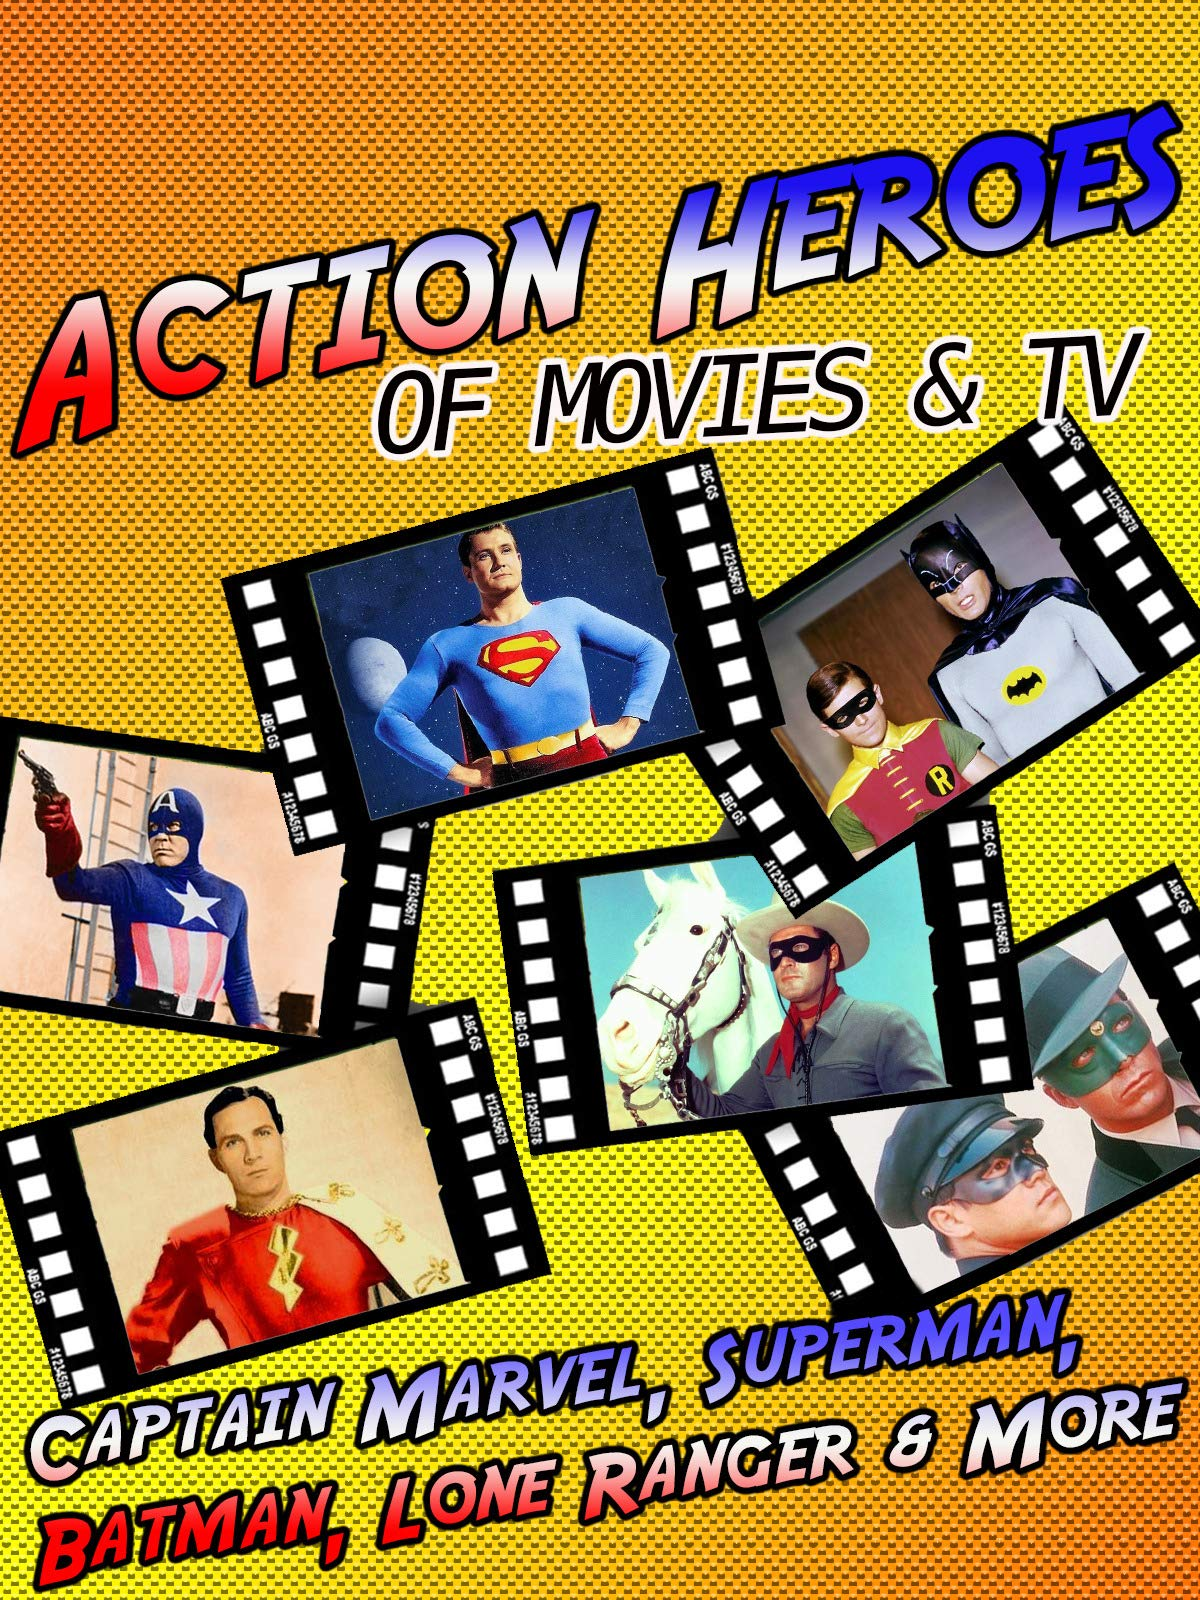 Action Heroes of Movies & TV - Captain Marvel, Superman, Batman, Lone Ranger & More